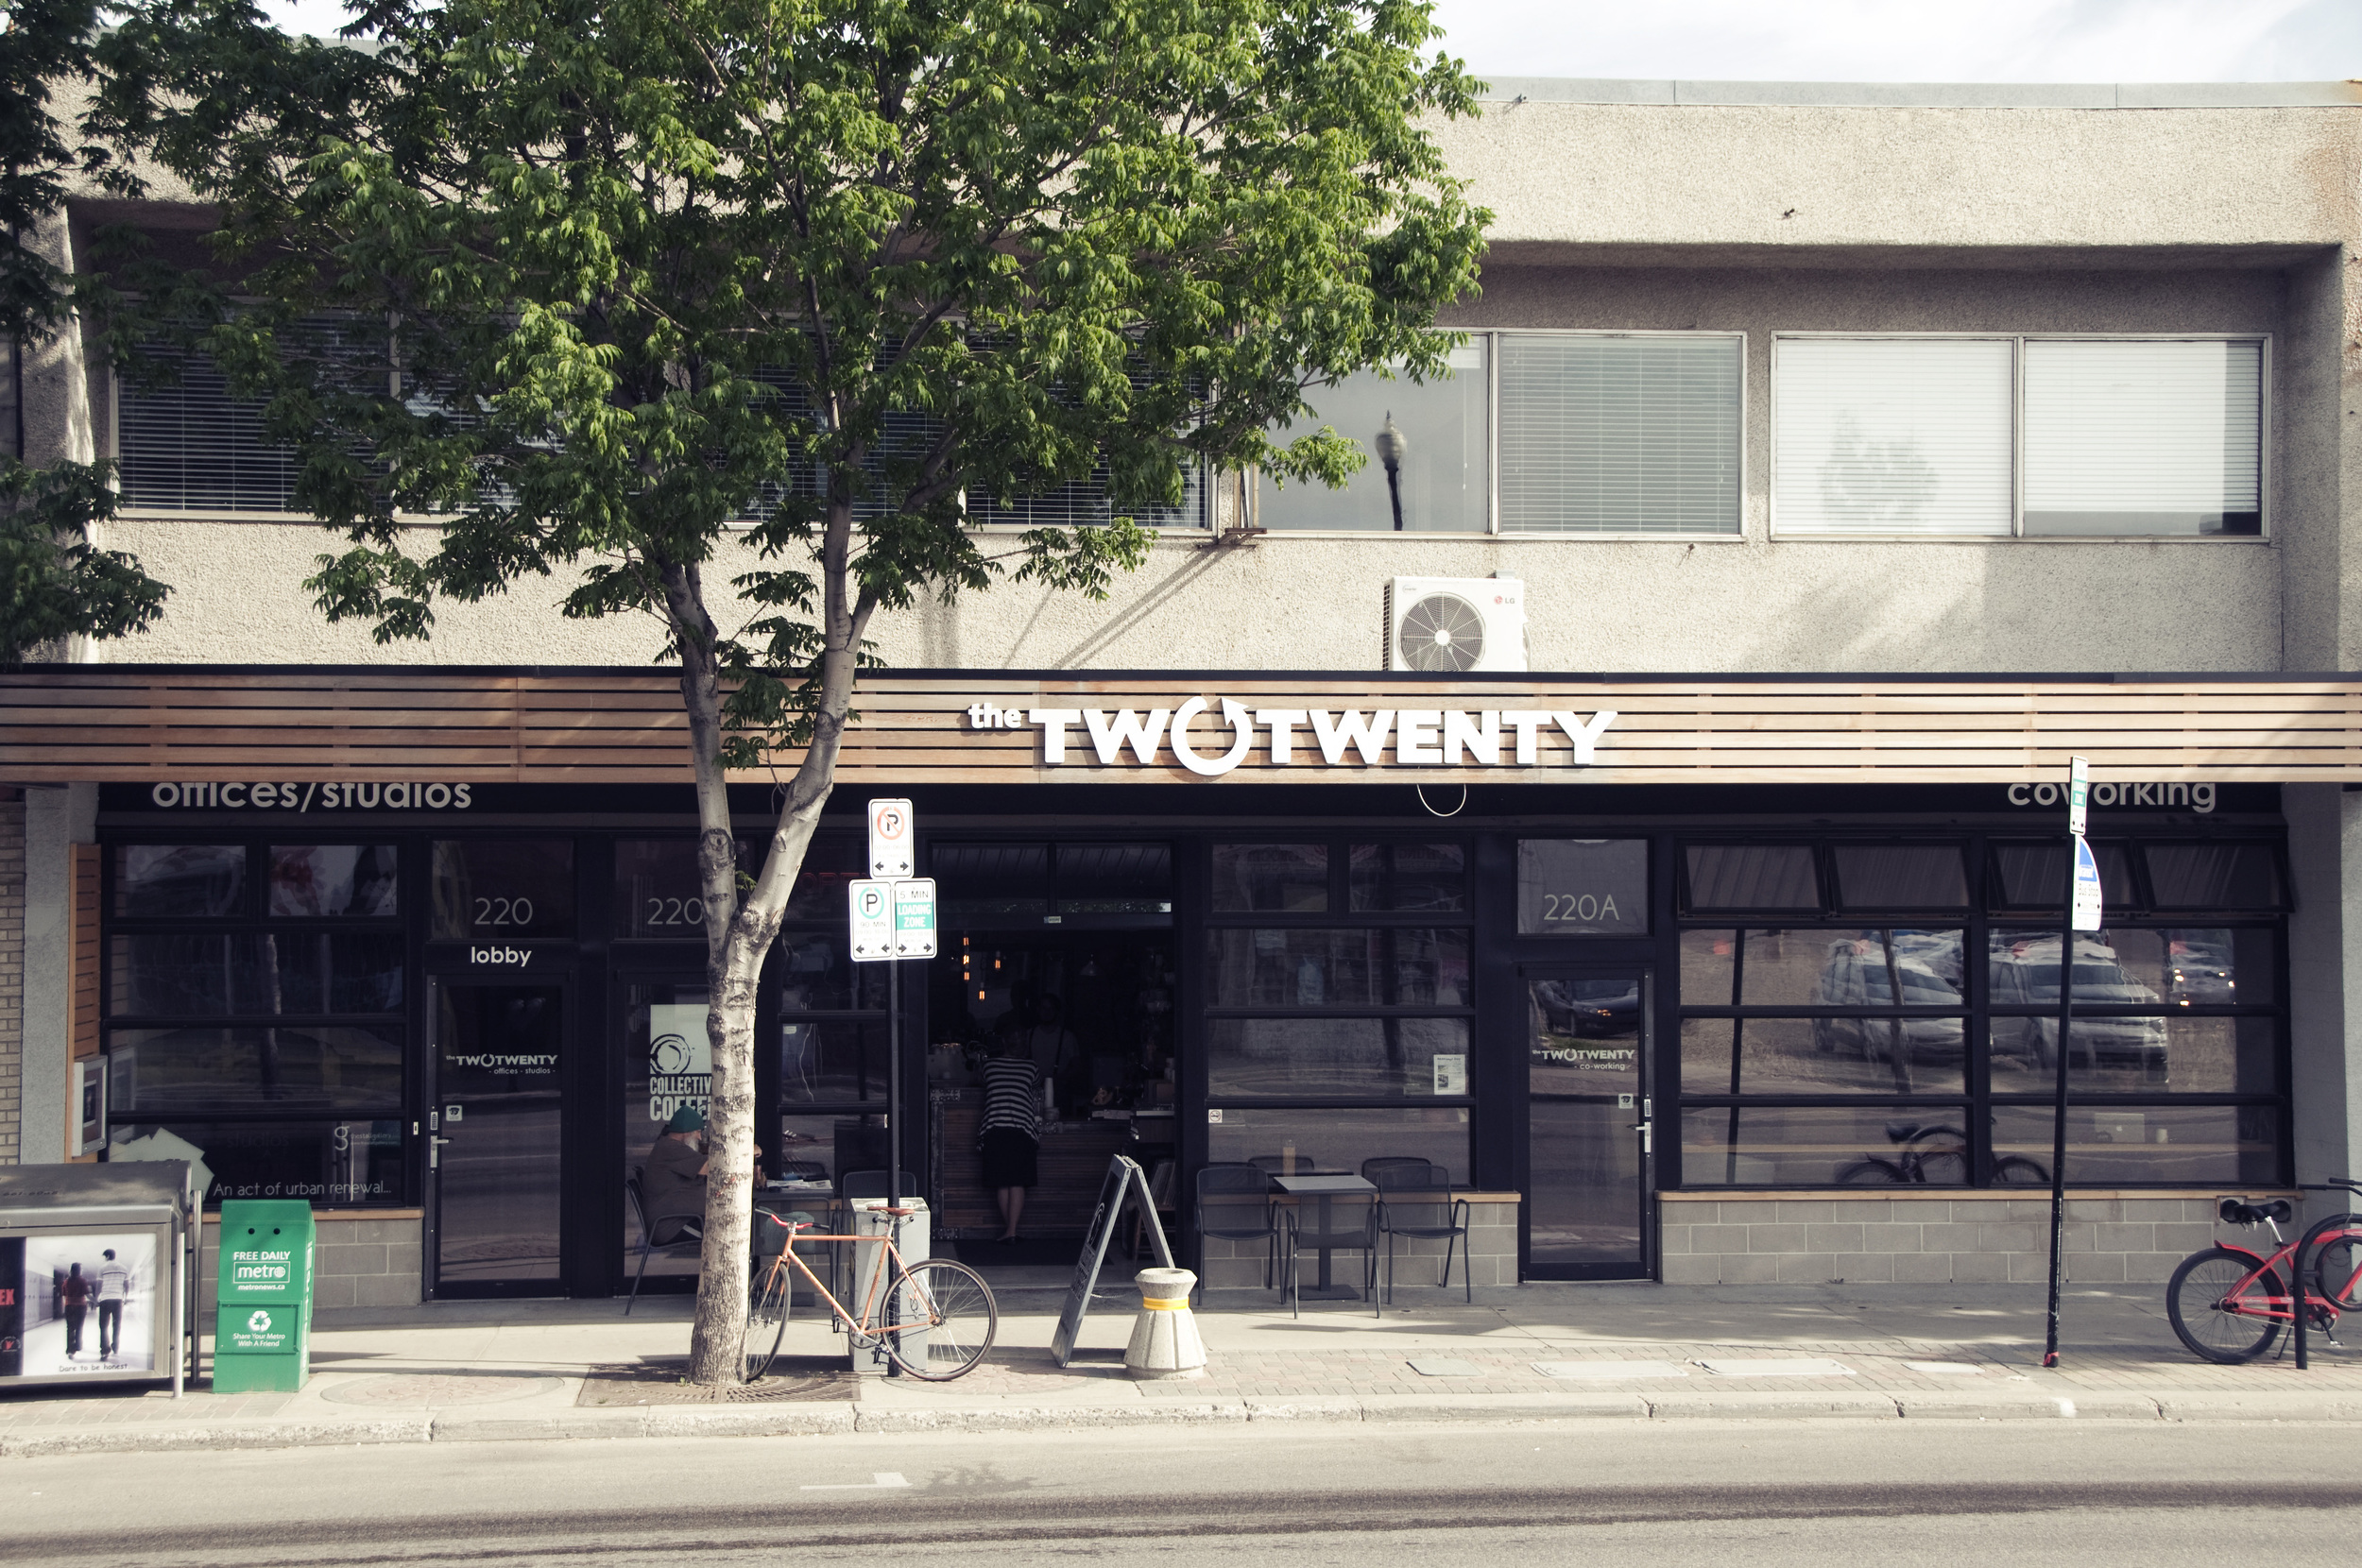 We cowork at The Two Twenty in Riversdale, Saskatoon,  among a fantastic community of entrepreneurs, artists, thinkers, makers and doers.